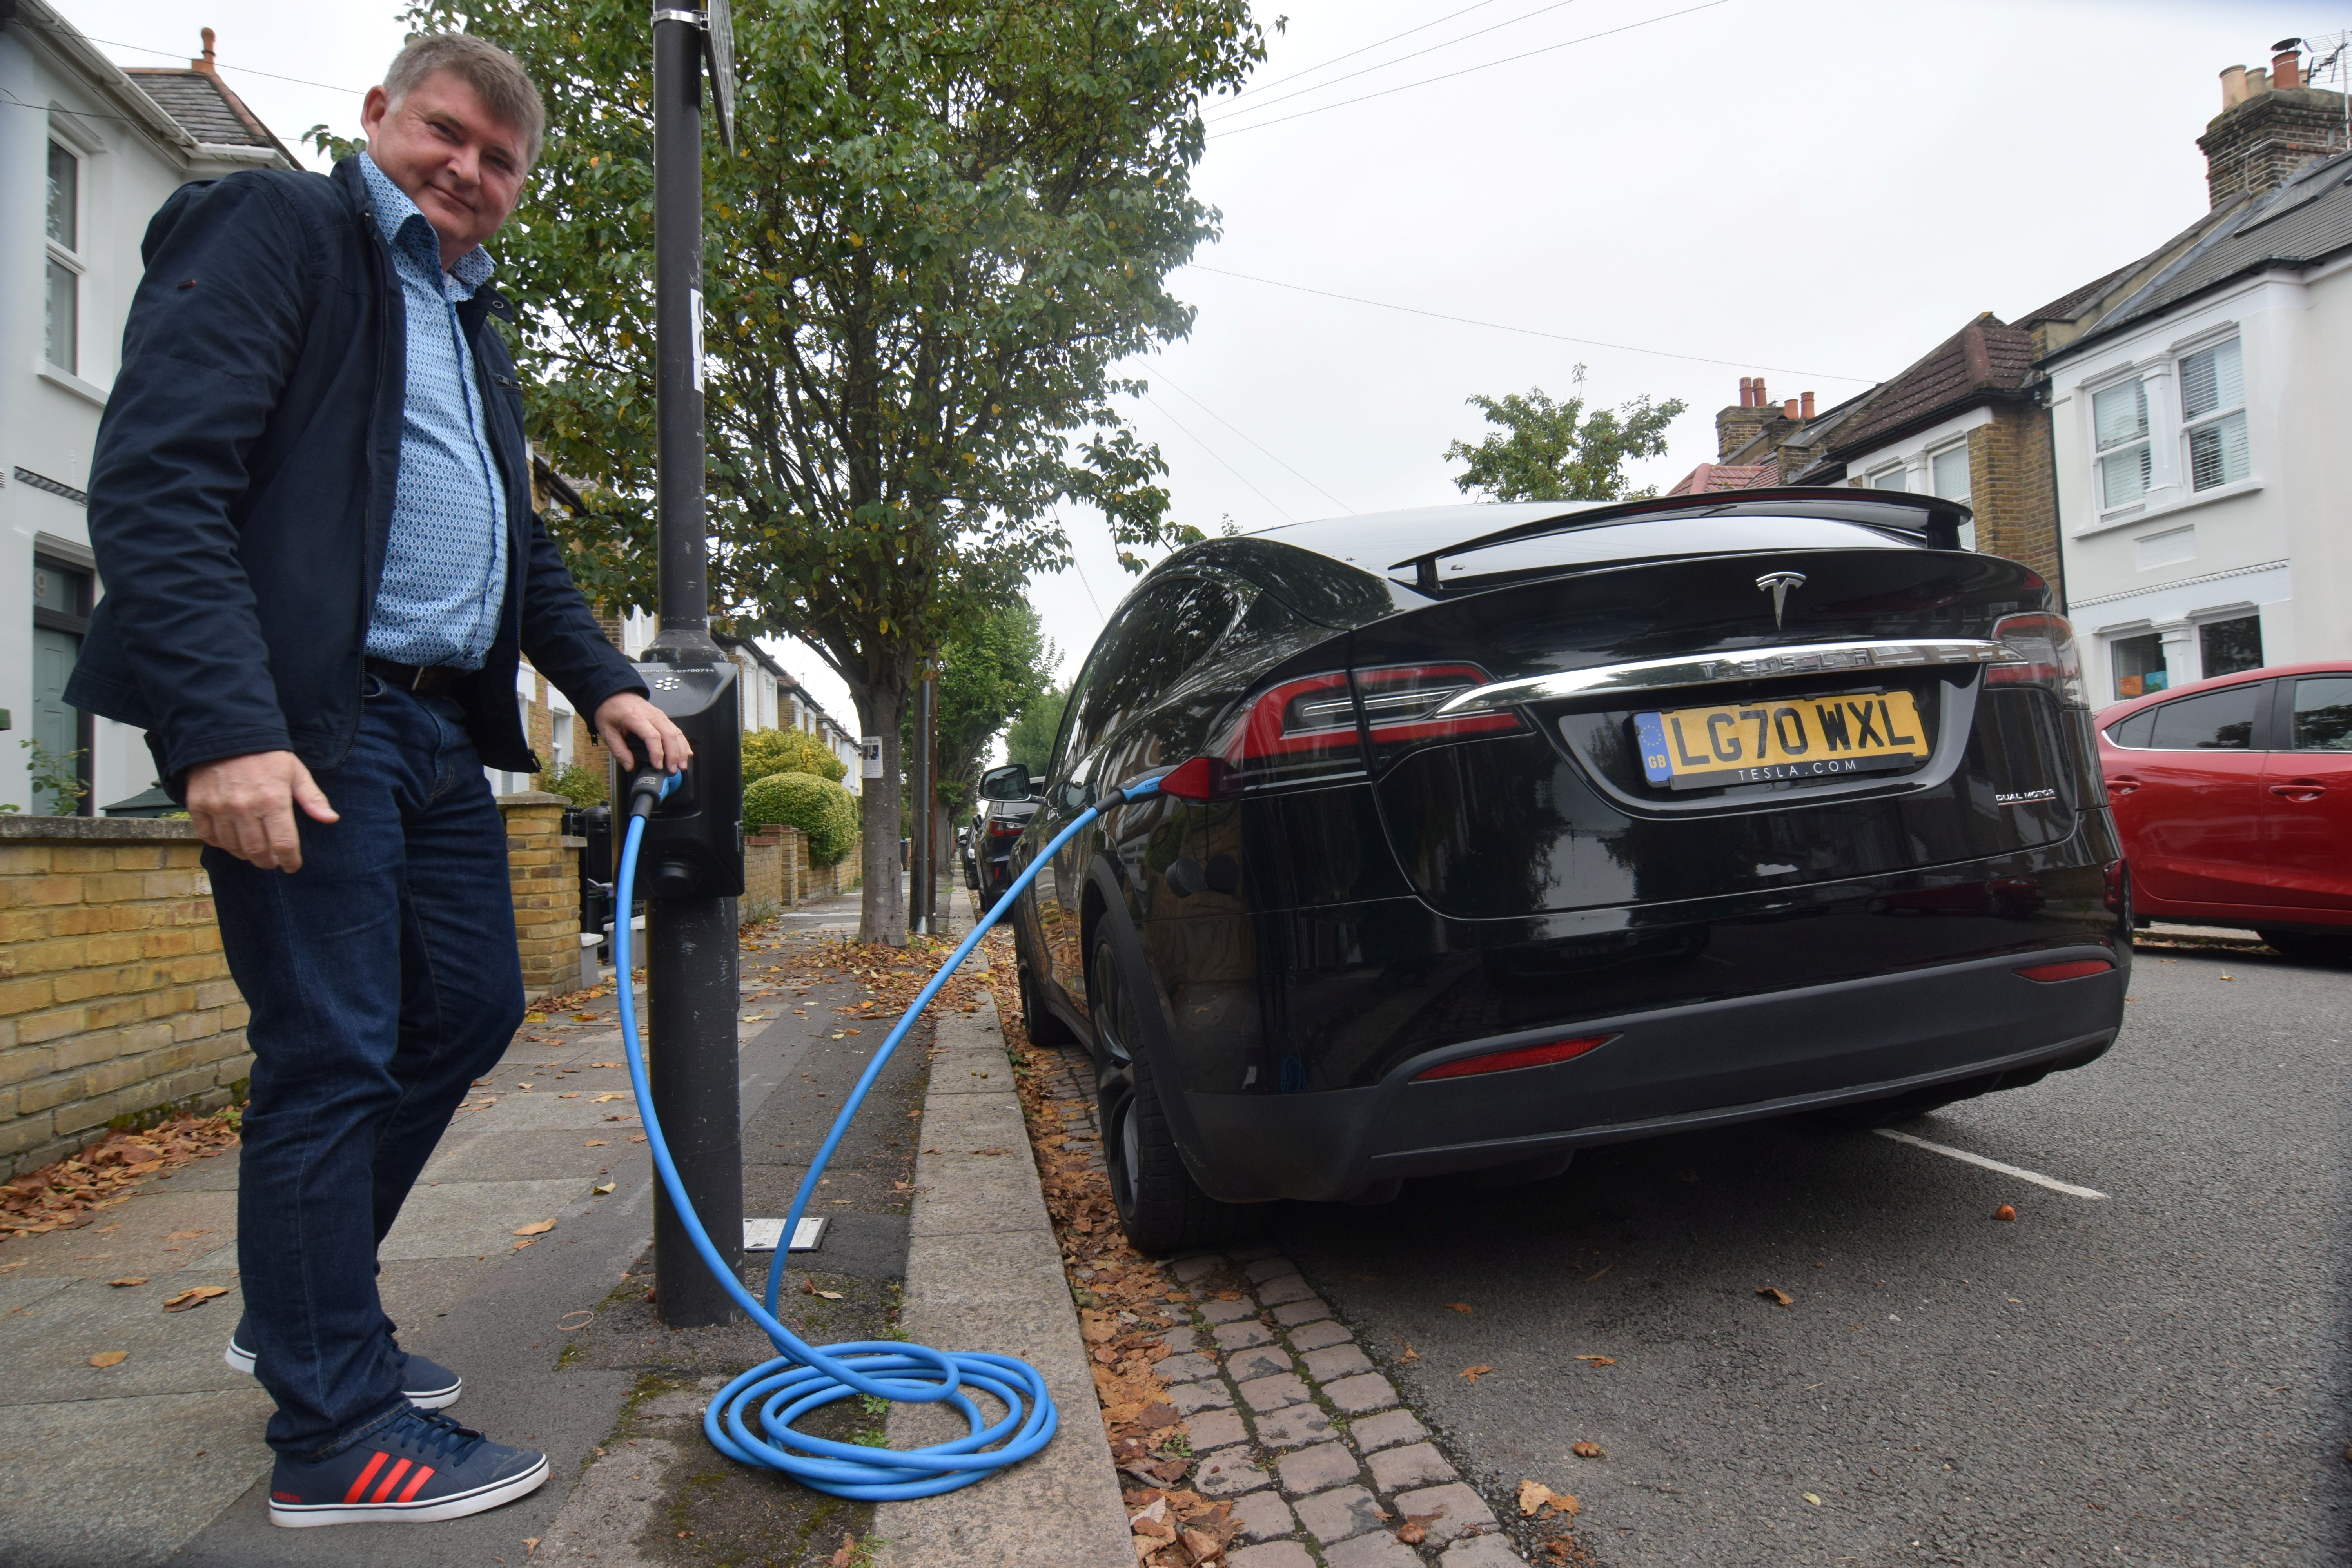 Richard Stobart, CEO of an electric vehicle charging system startup company Char.gy, demonstrates one of the company's lamp post chargers in London, Britain, September 20, 2021. REUTERS/Nick Carey